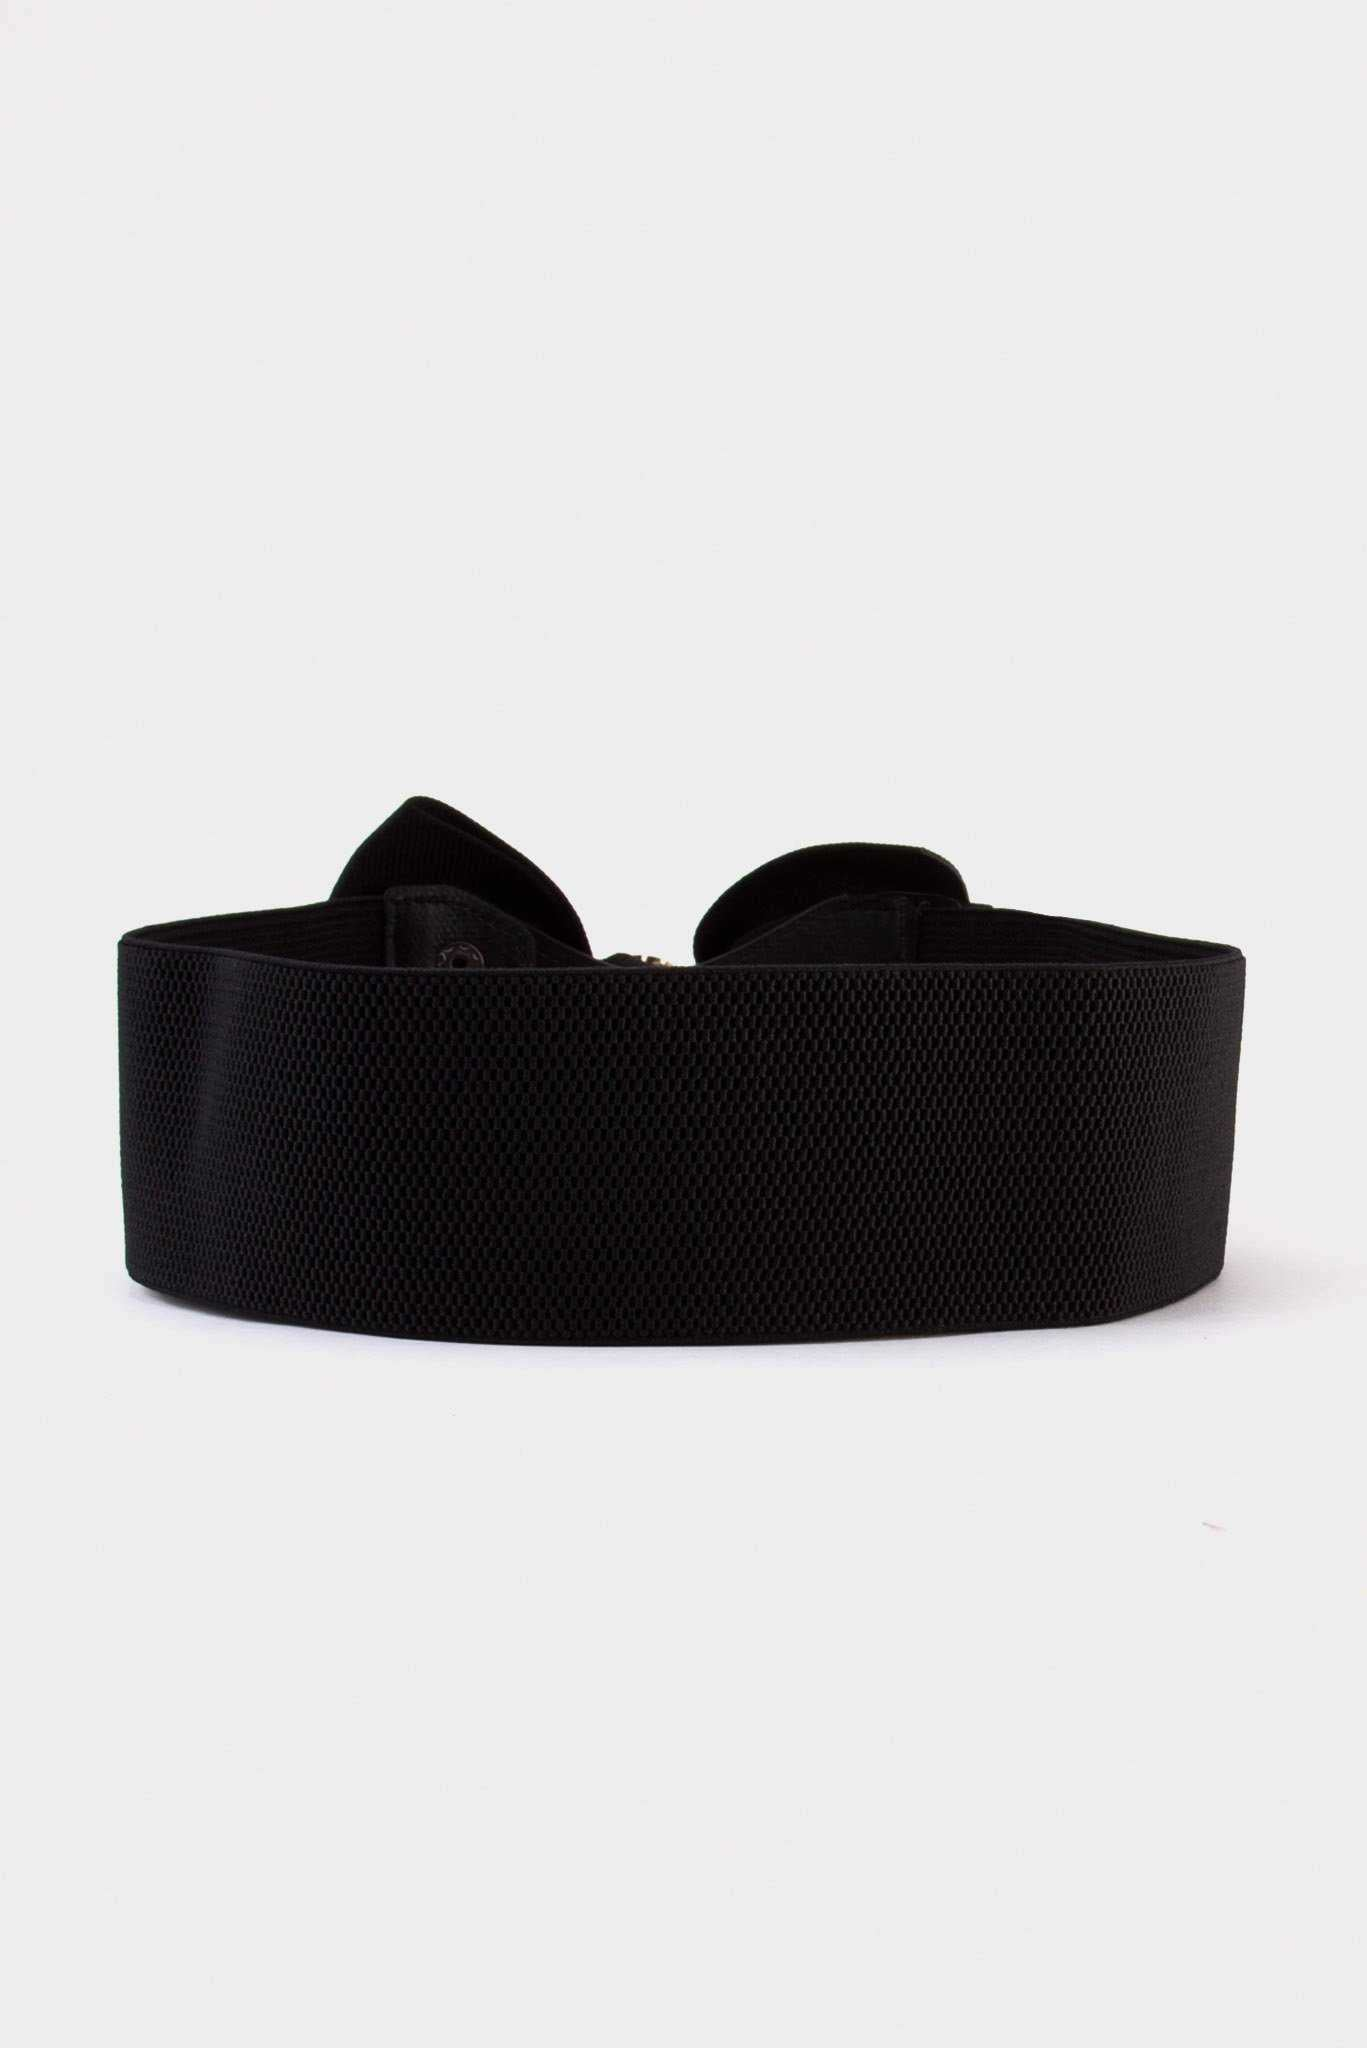 Bow Belt - Black | Raw Orange